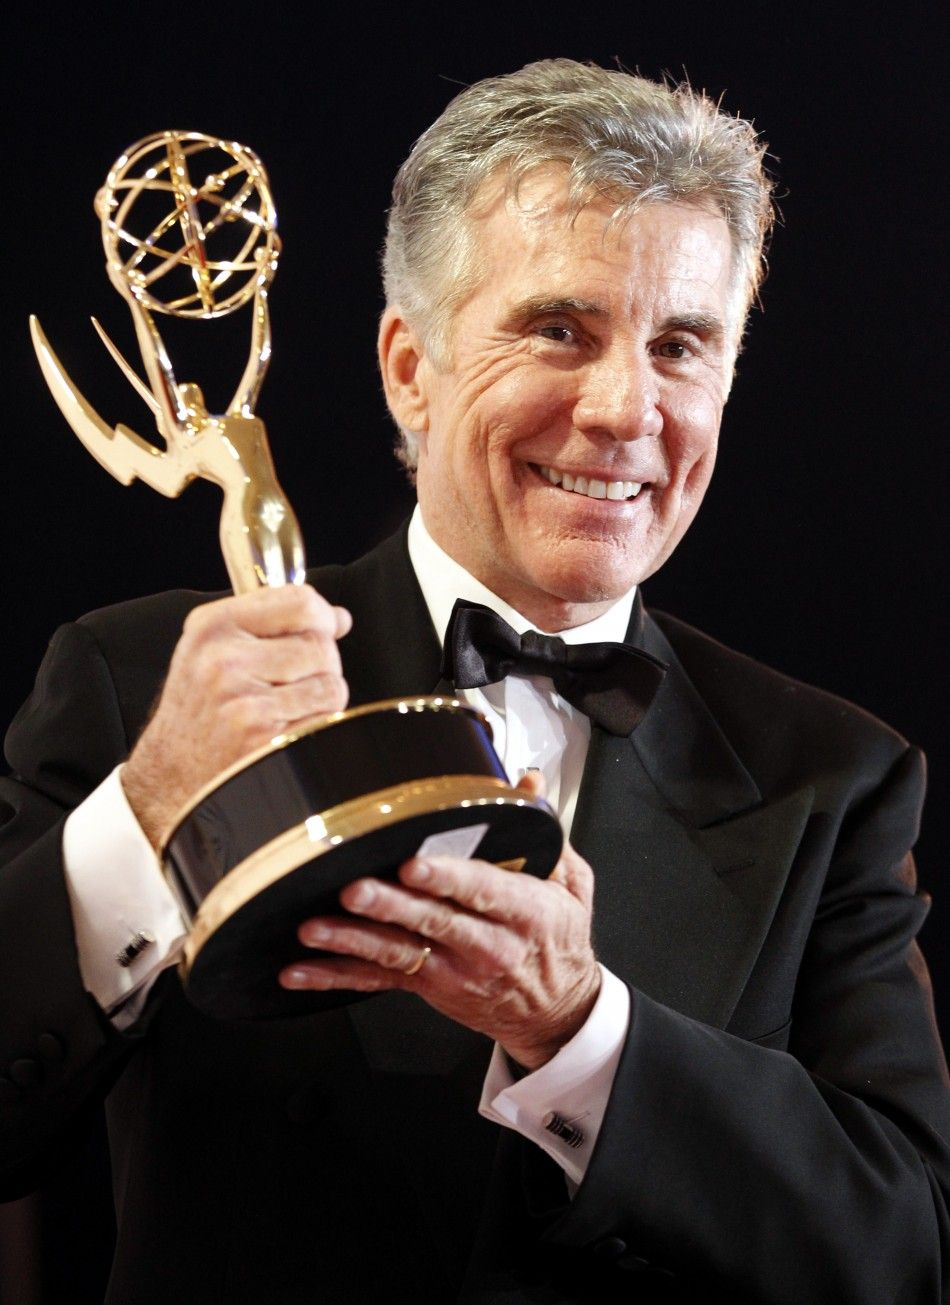 John Walsh looking happy holding his emmy award wearing a black suit